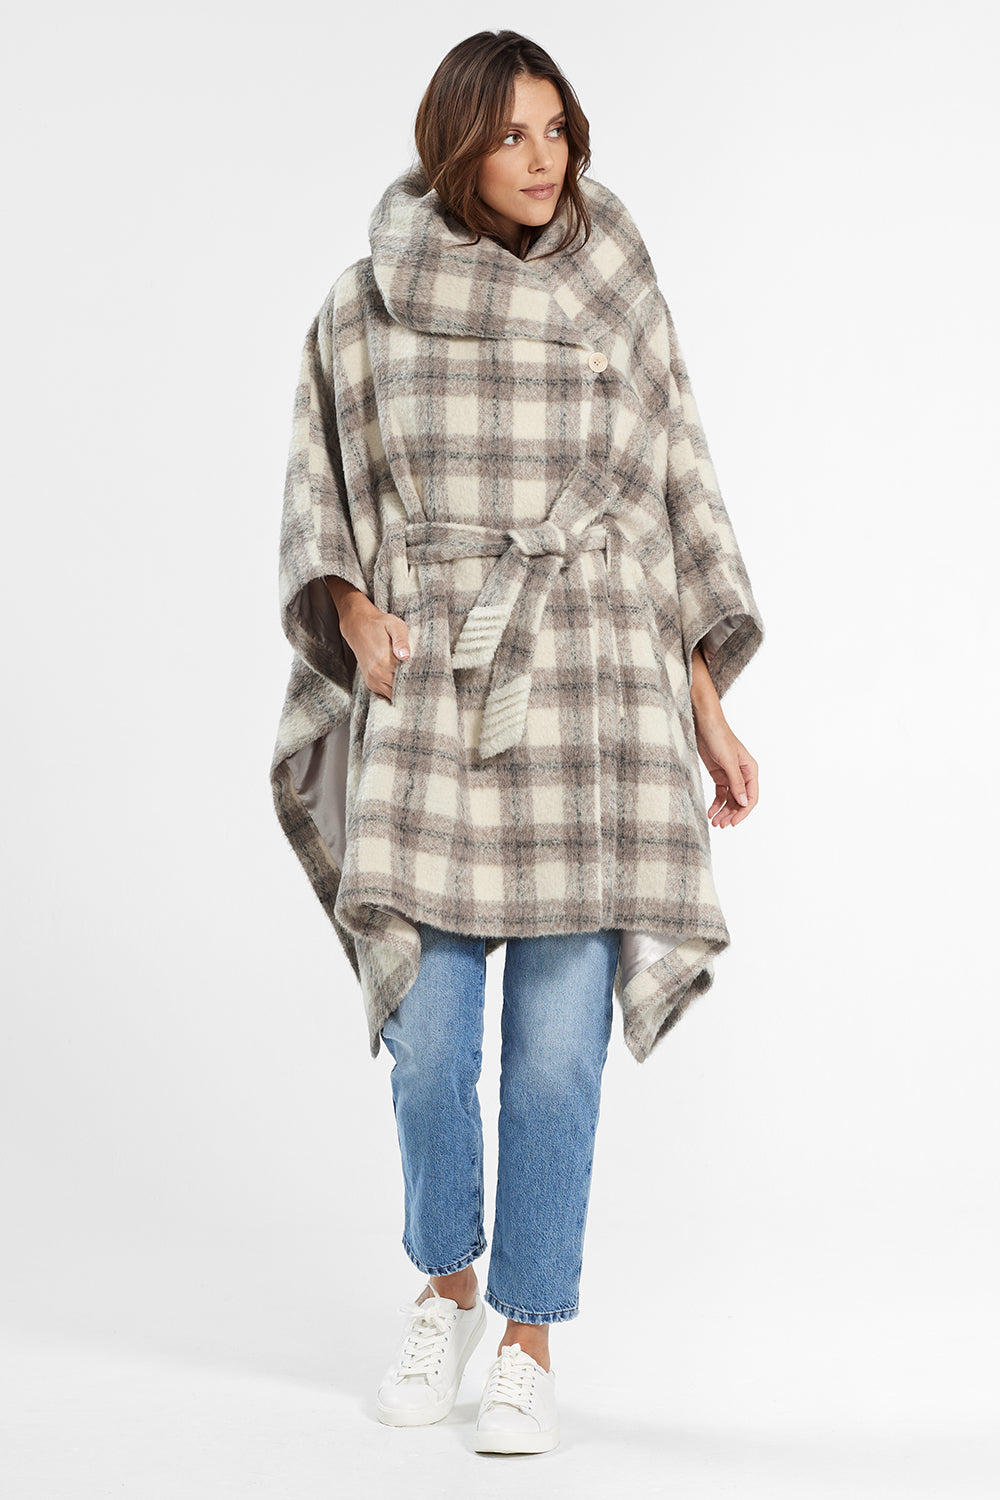 Sentaler Plaid Oversized Hooded Poncho with Belt featured in Suri Alpaca and available in Ecru Plaid. Seen from front.